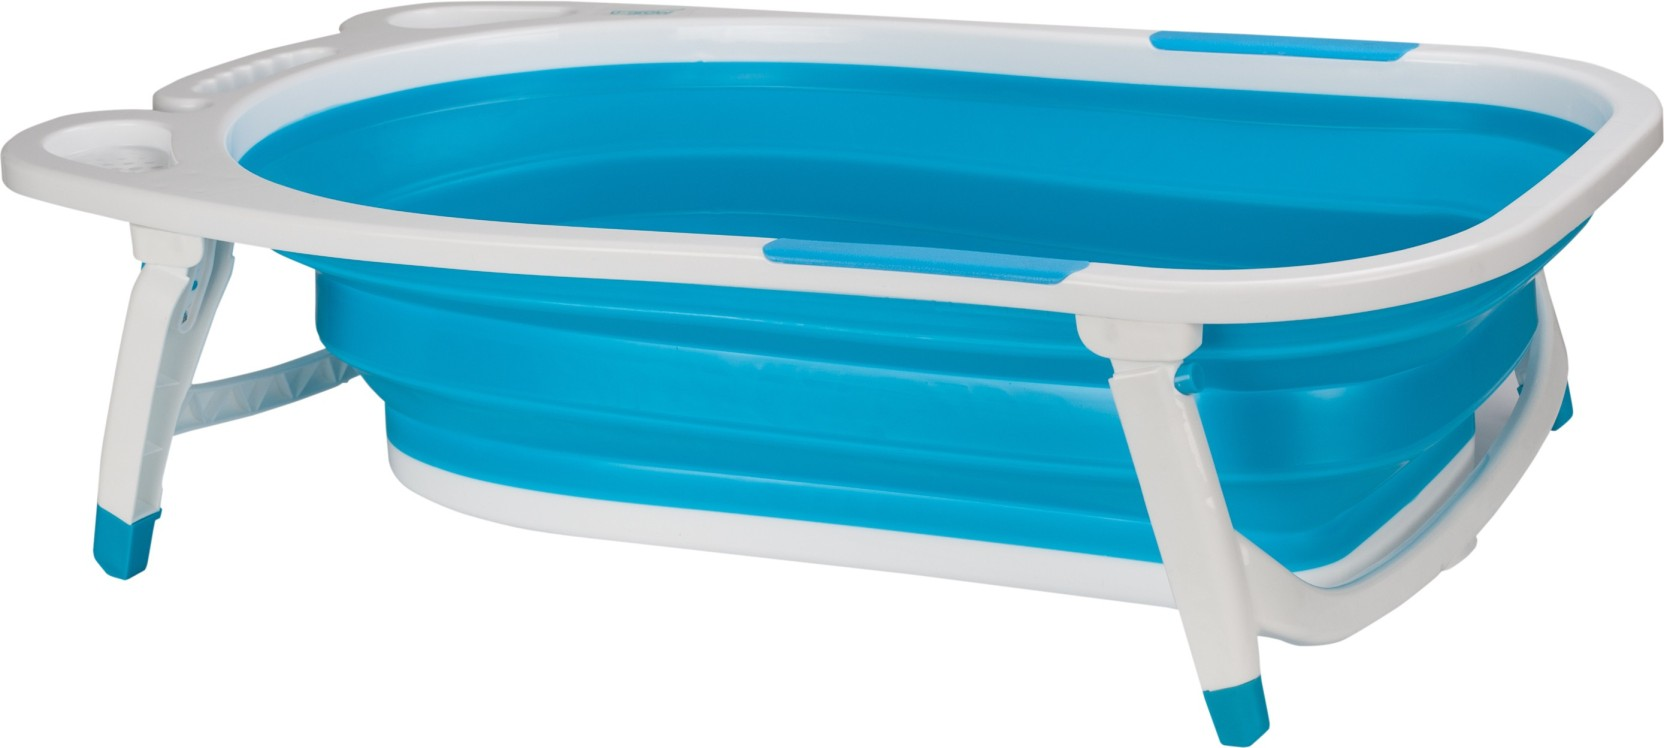 U-Grow Folding Silicone Baby Bath Tub - Blue Price in India - Buy U ...